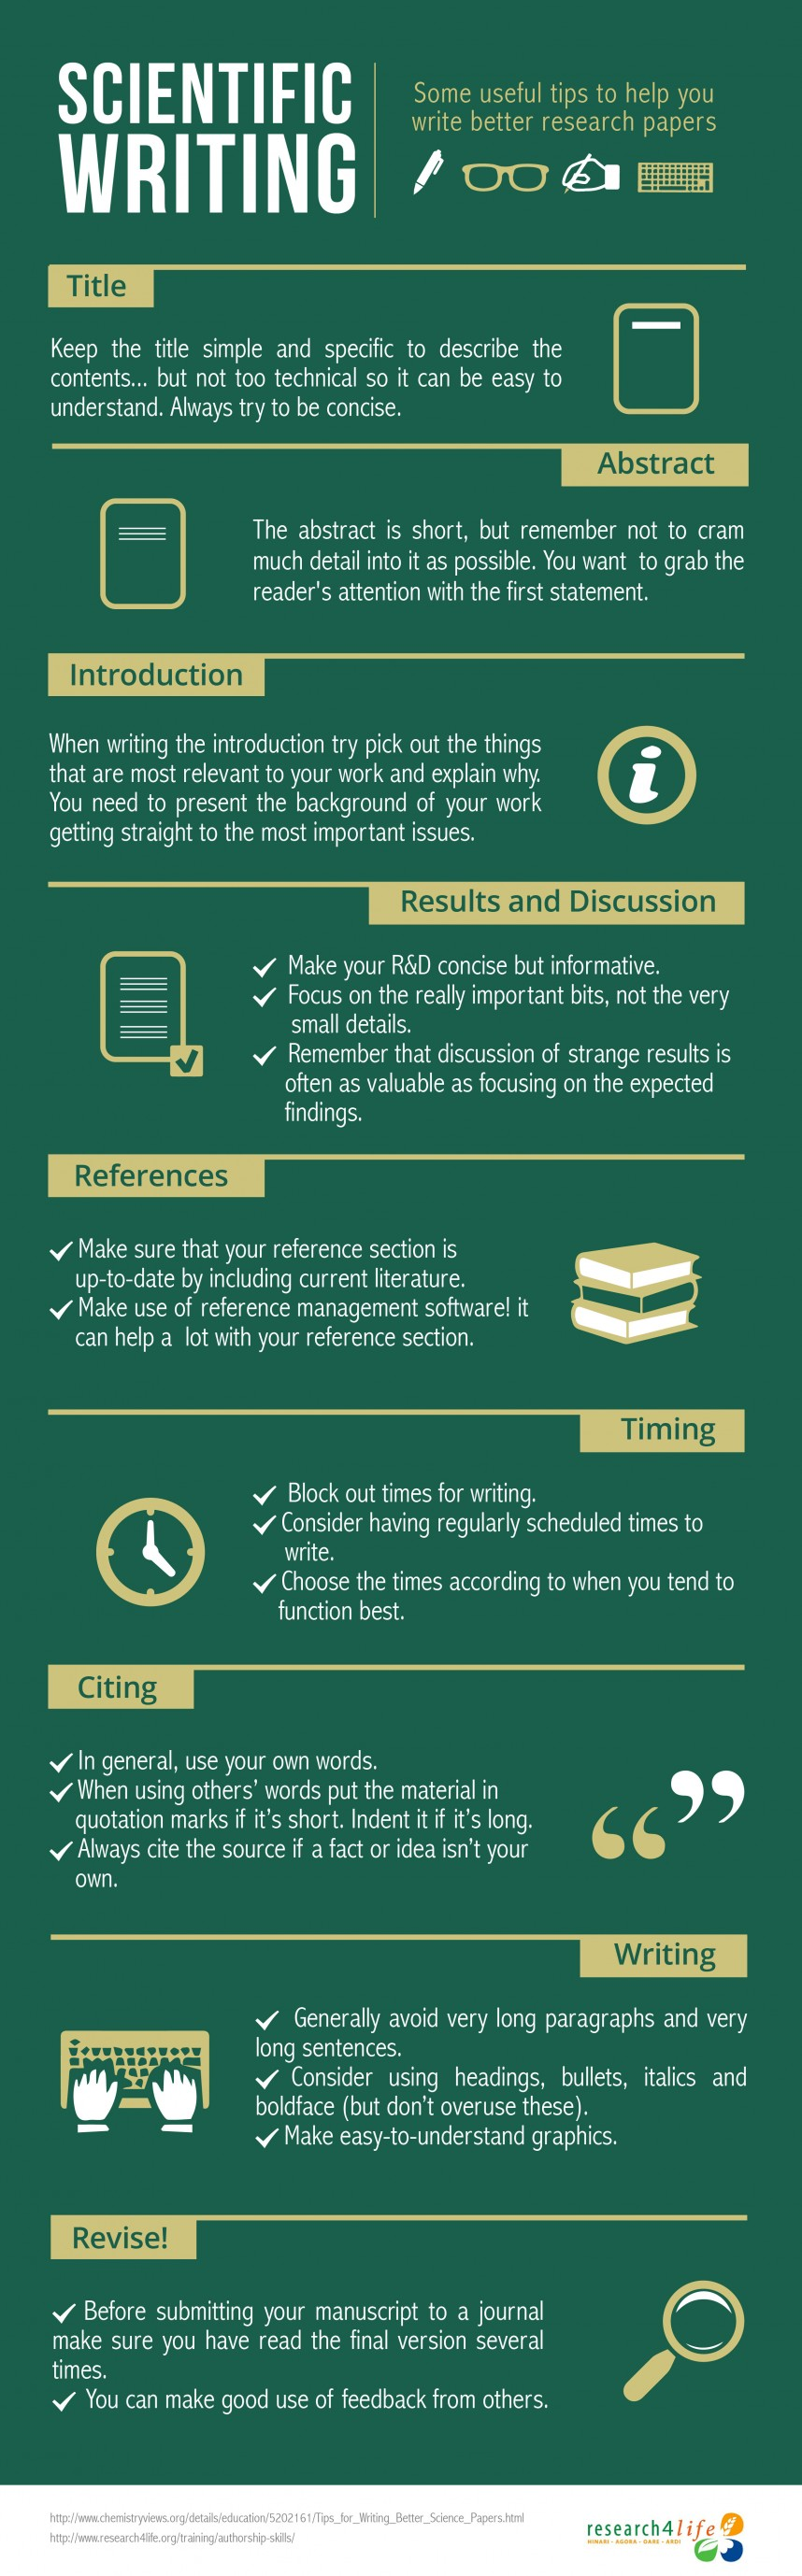 018 Scientific Writing Researchs Online Singular Research Papers Paper On Digital Library Pdf Free